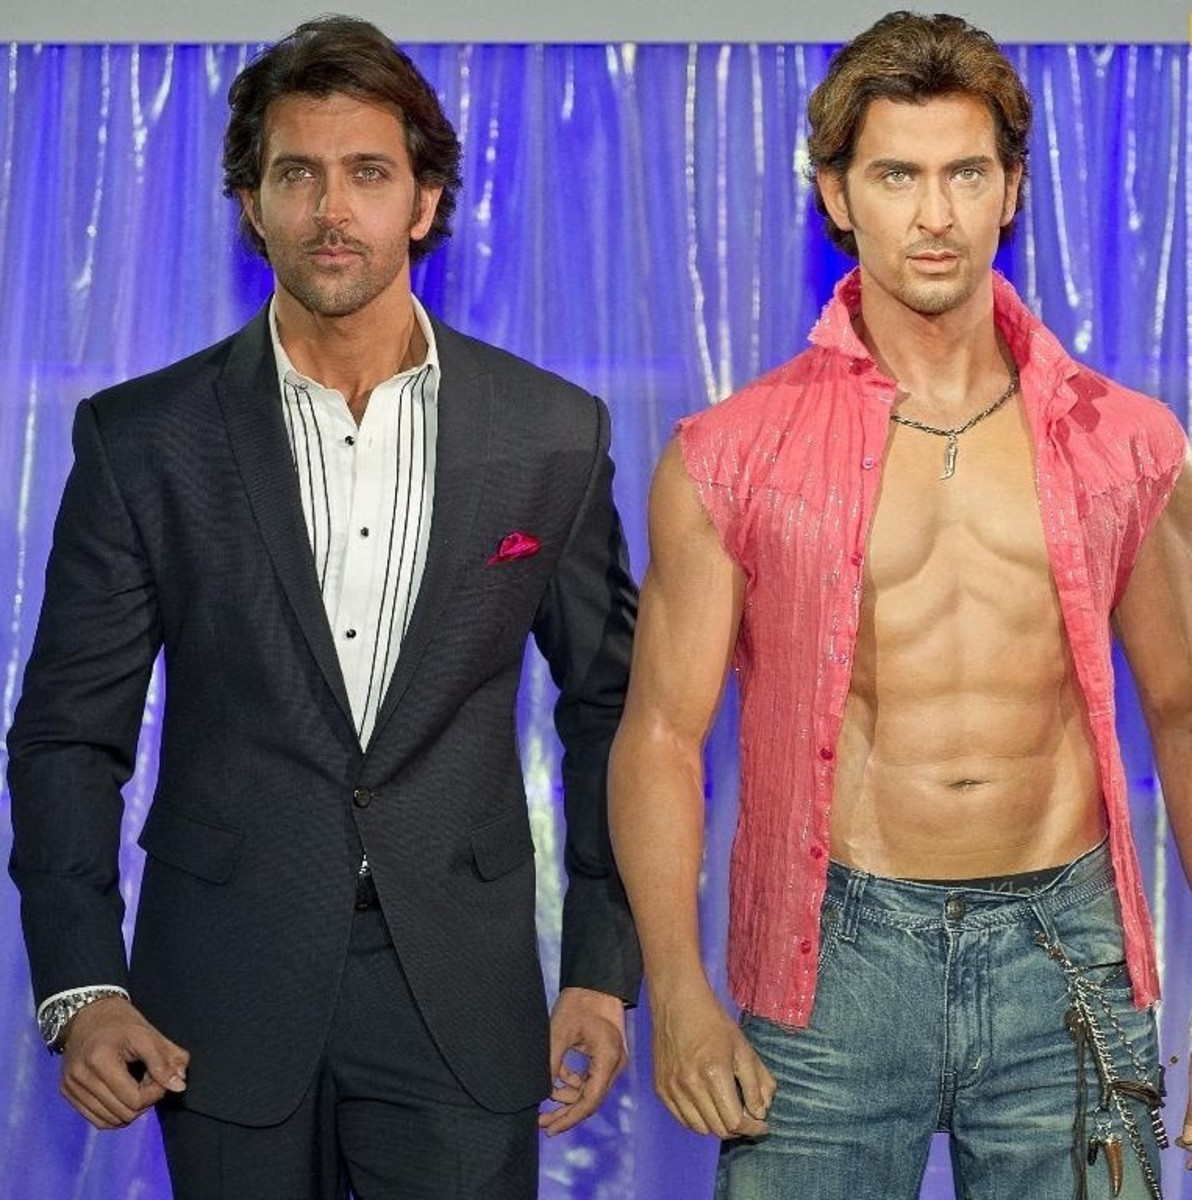 Hrithik Roshan with his wax statue at Madame Tussaud's, London (2011), CC-BY-SA-3.0.